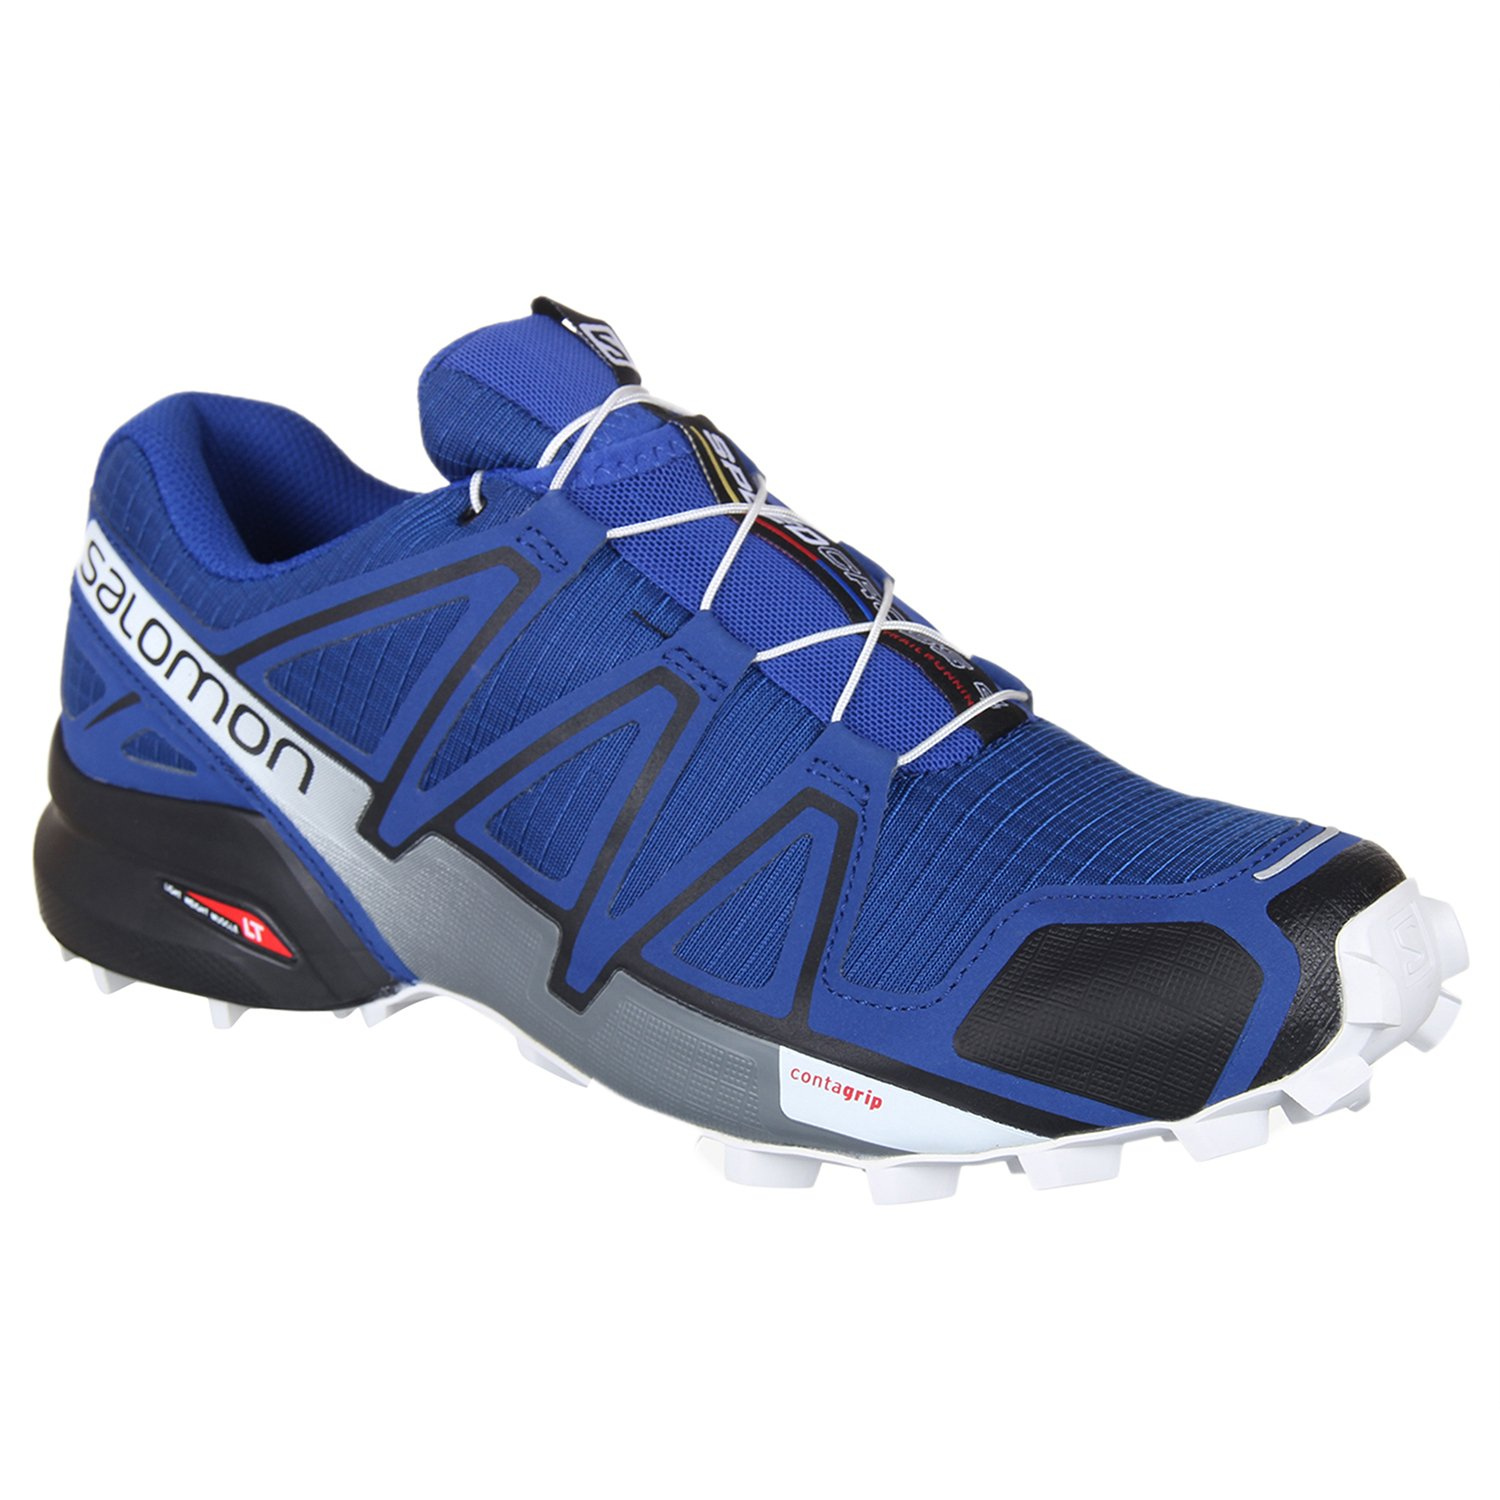 Salomon Speedcross 4 mazarine blue wildblackwhite au